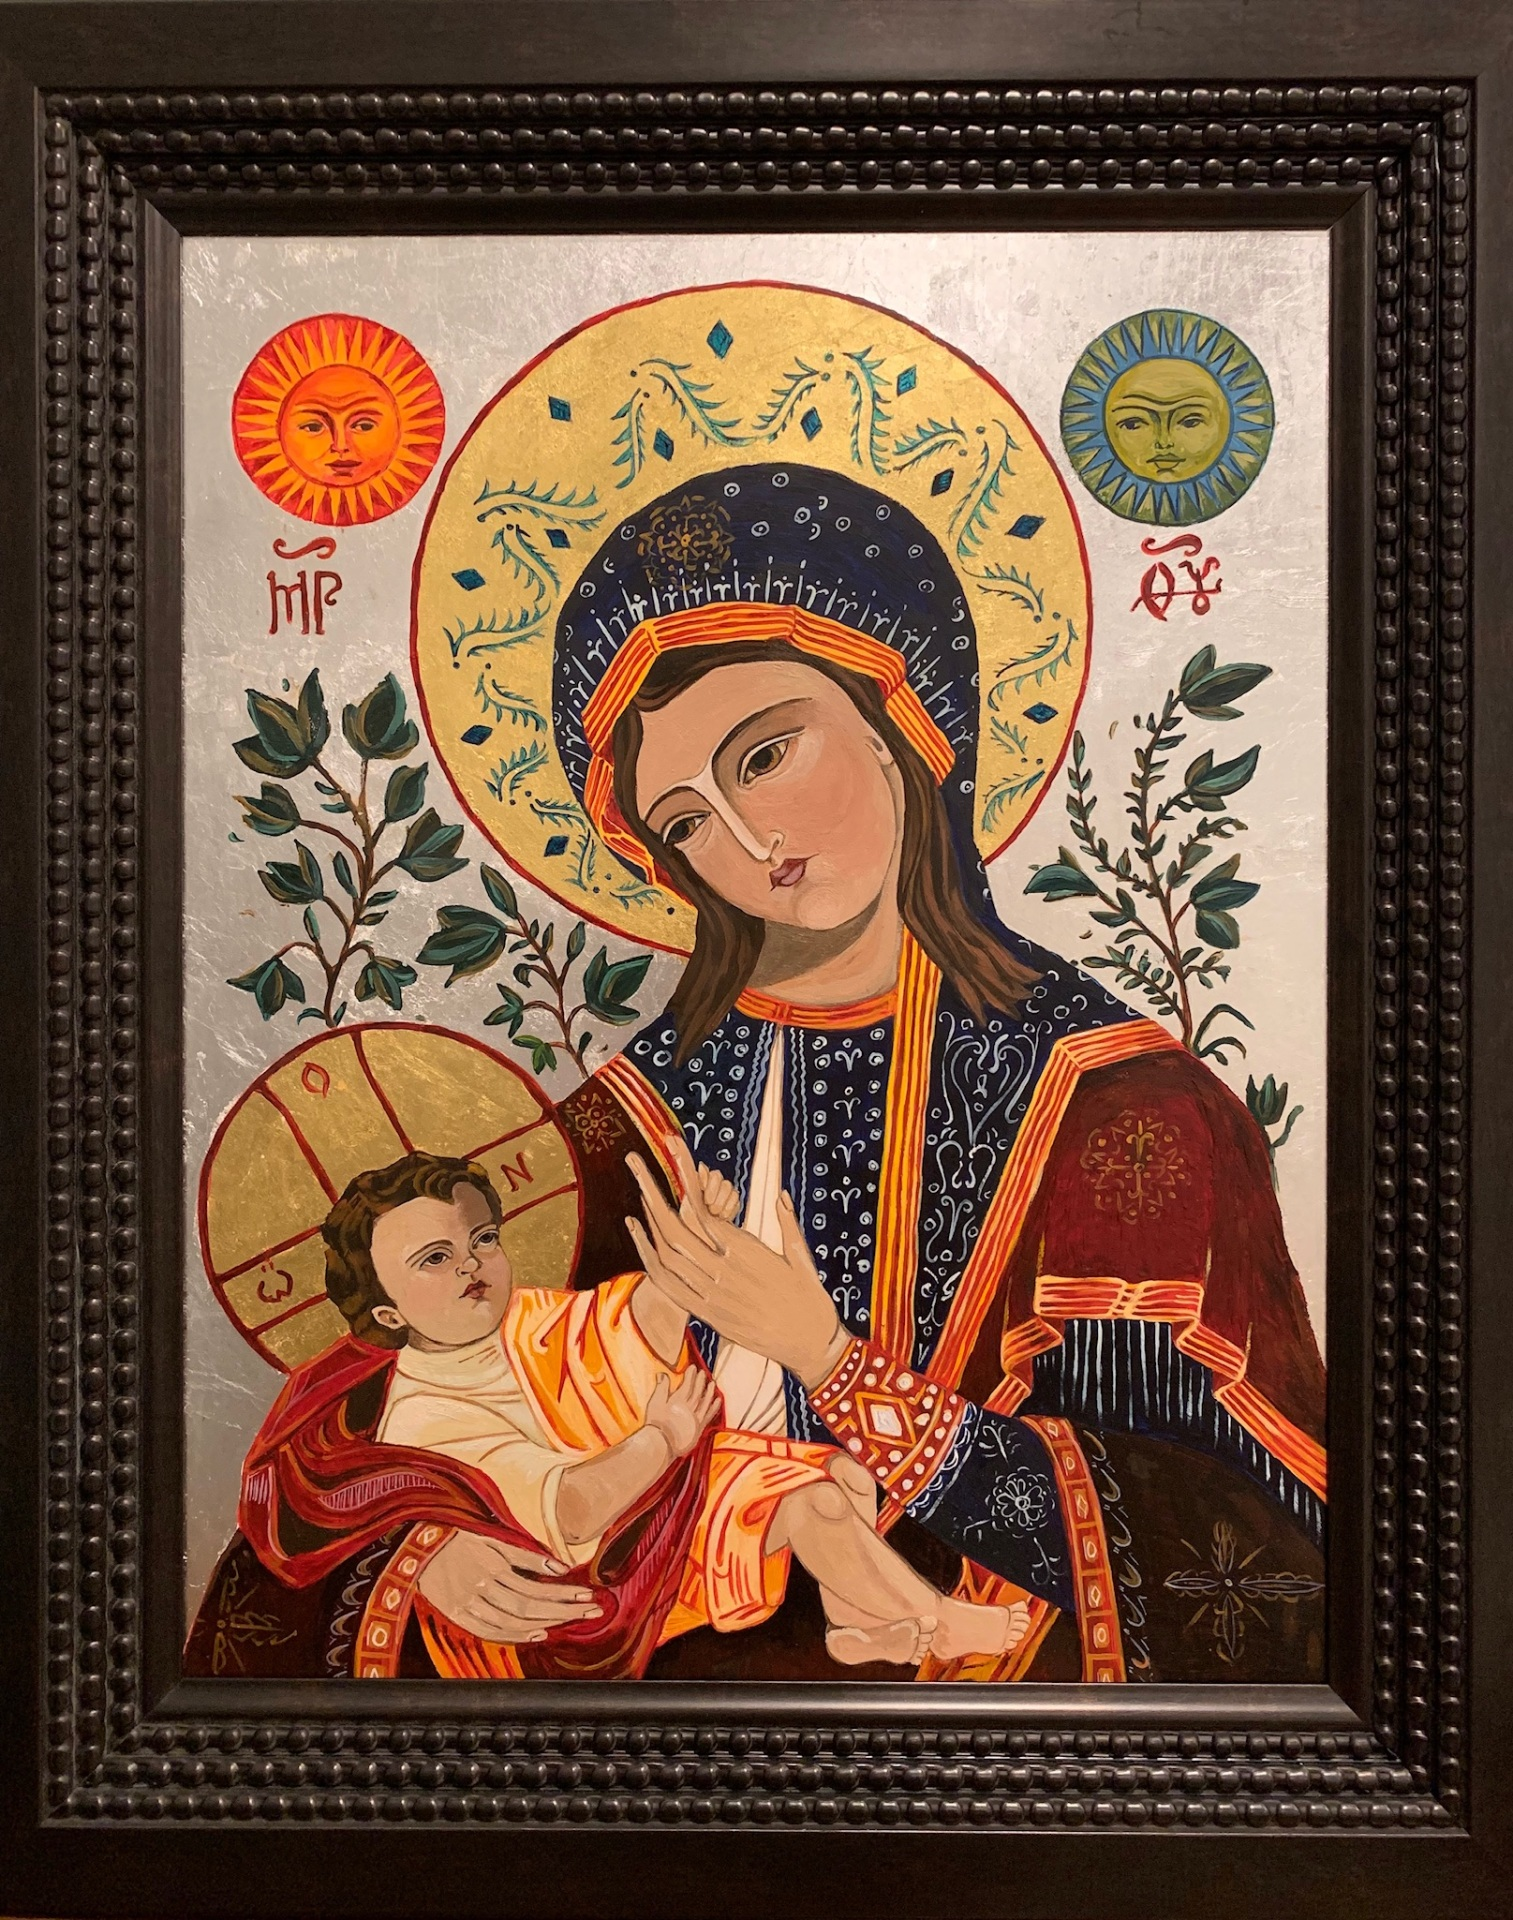 Mother mary, mother of god, angels, Catholic art, religious art, holy images, iconography